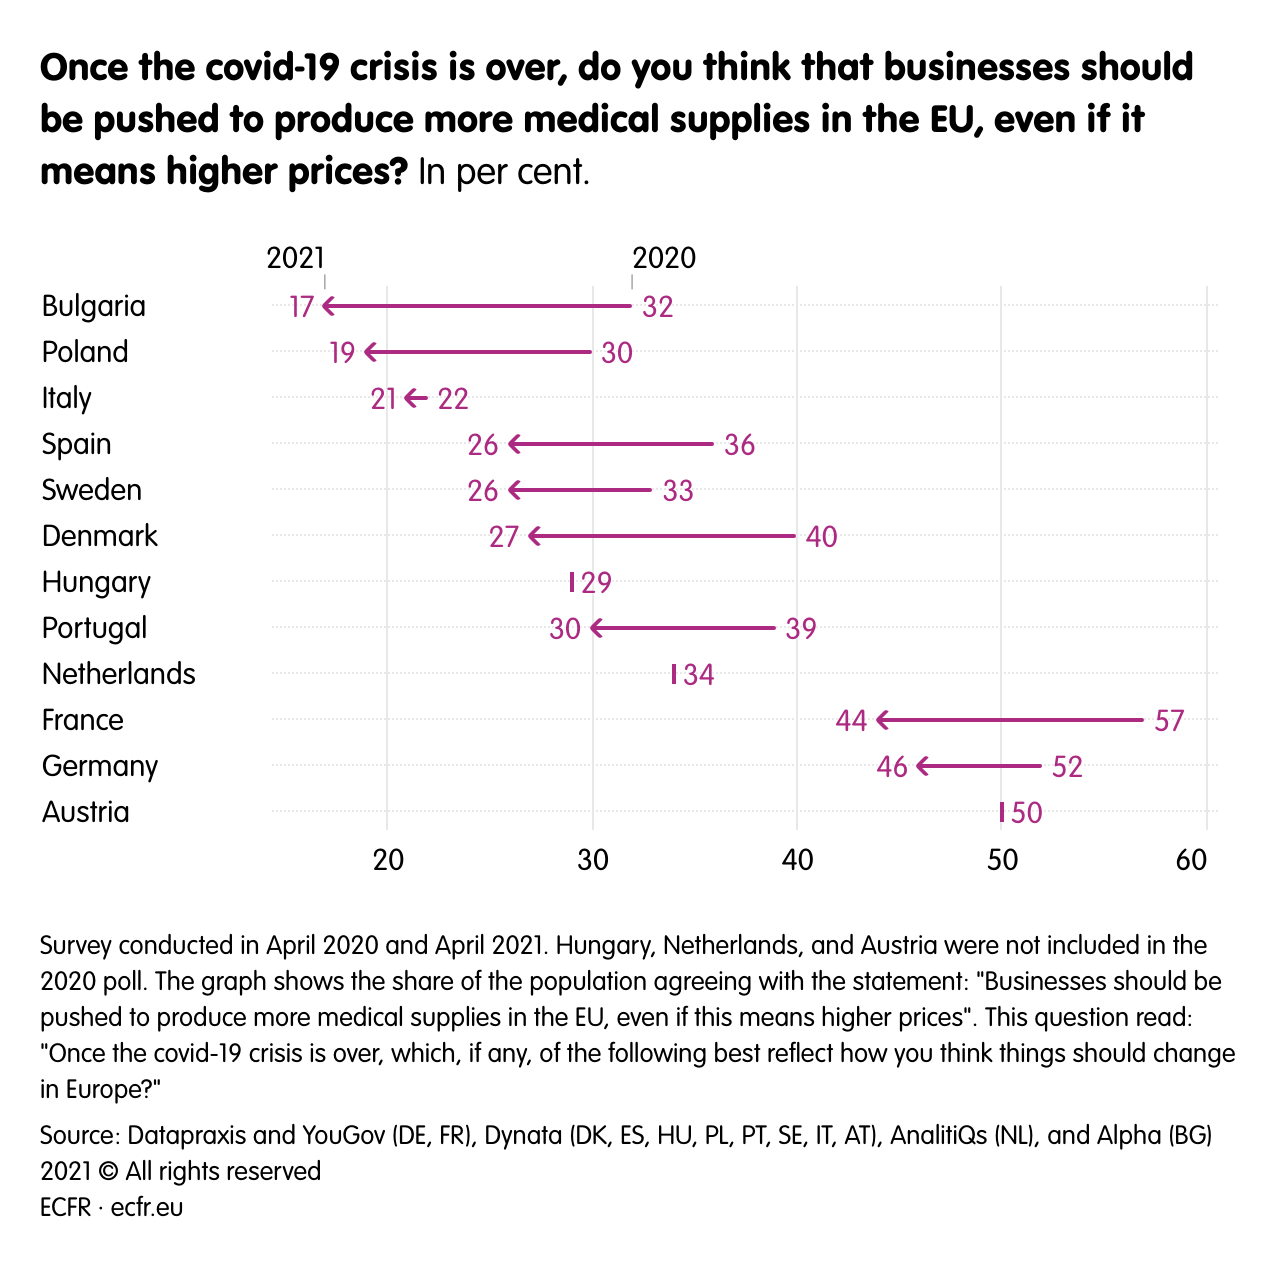 Once the covid-19 crisis is over, do you think that businesses should be pushed to produce more medical supplies in the EU, even if it means higher prices?